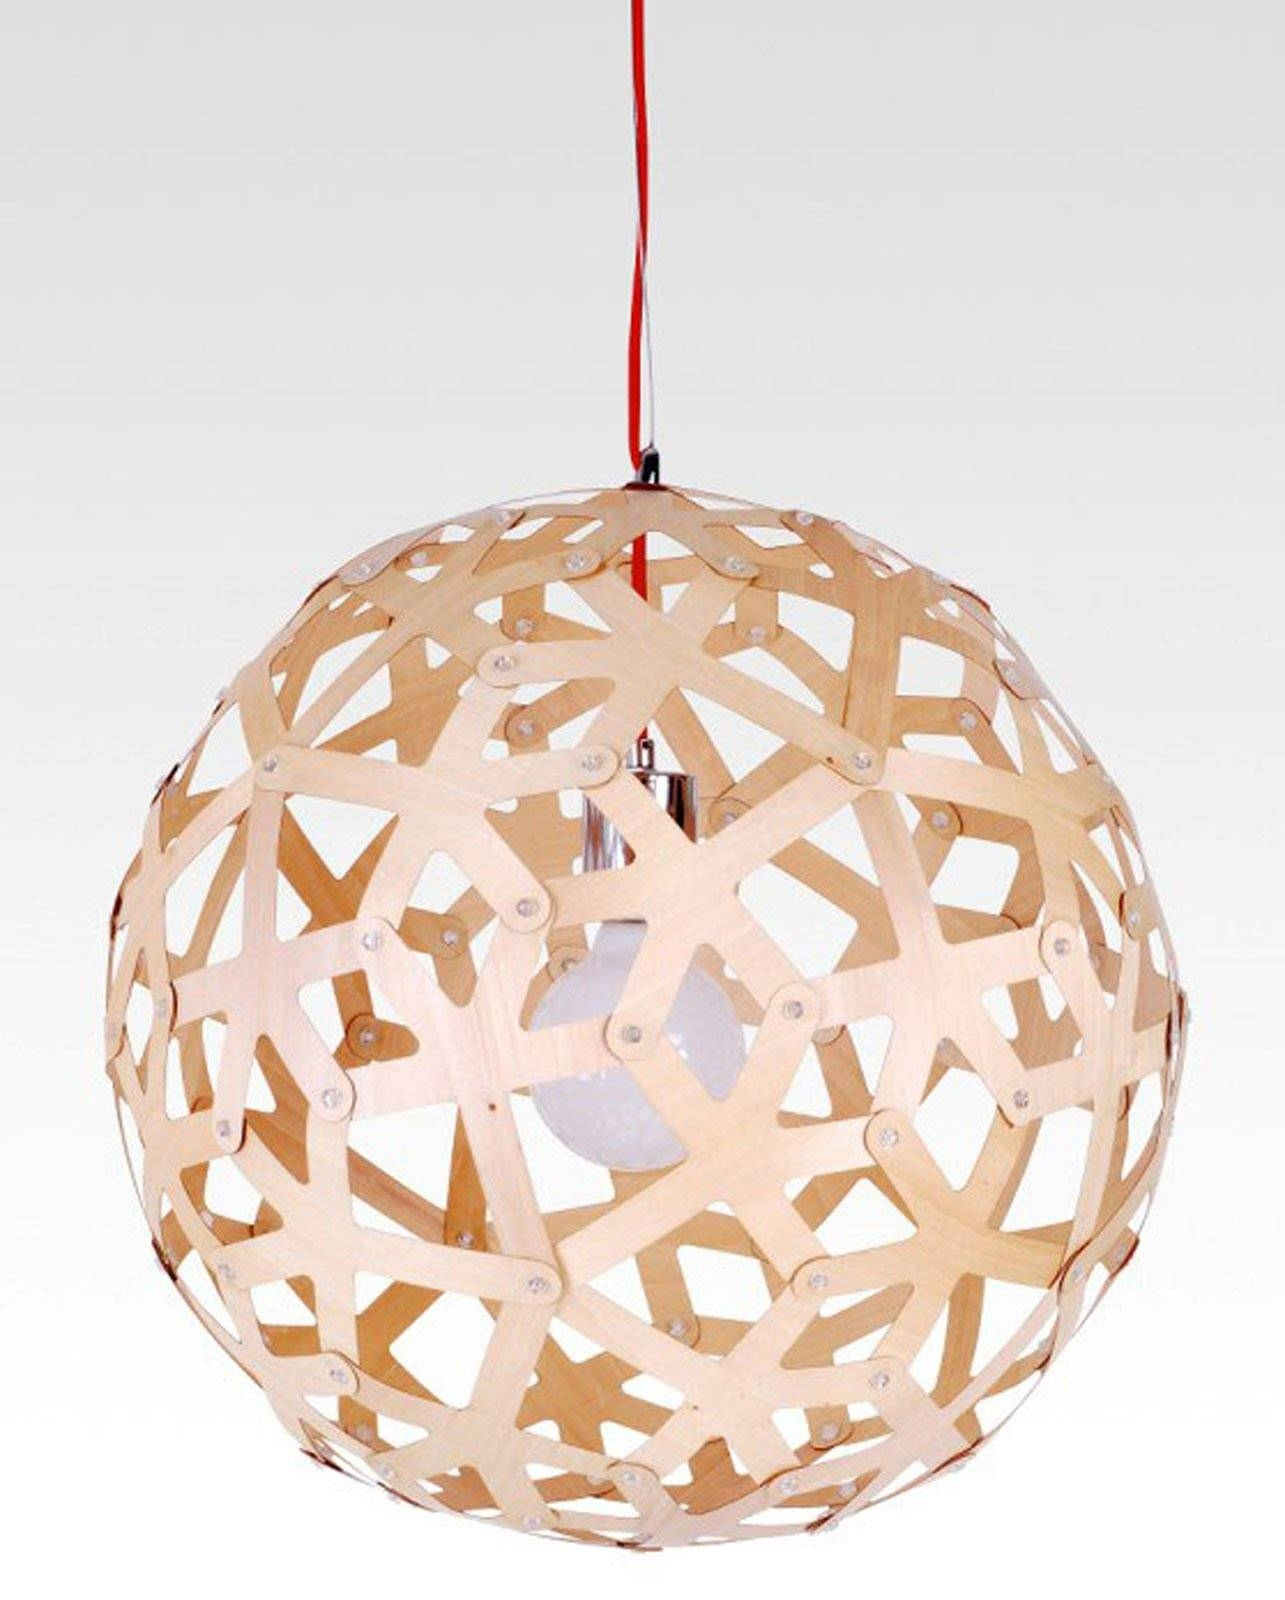 Buy Wood Pendant Light In Melbourne [sphere] – Youtube With Regard To Wooden Pendant Lighting (View 13 of 15)